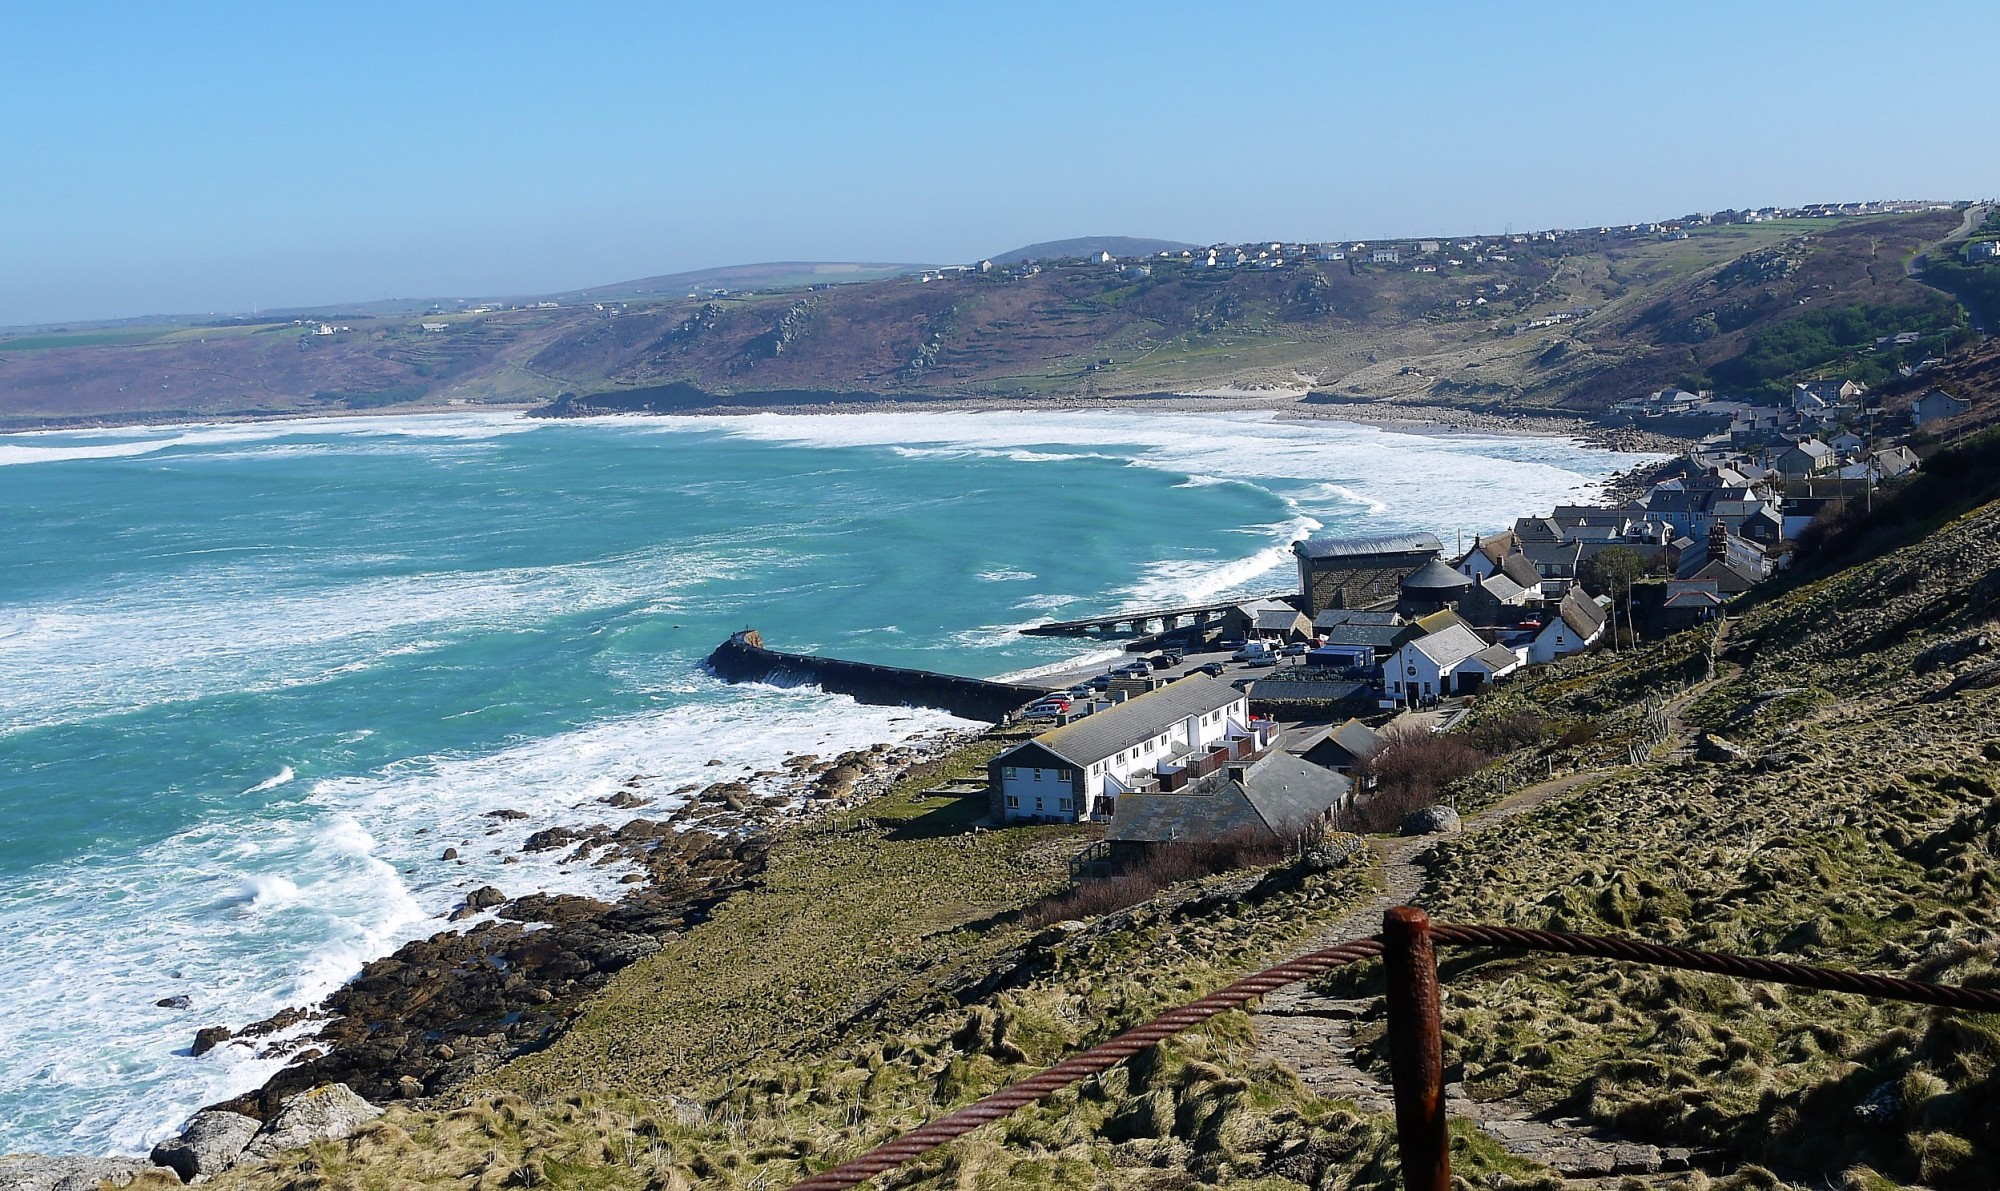 Sennen Cove winter scene